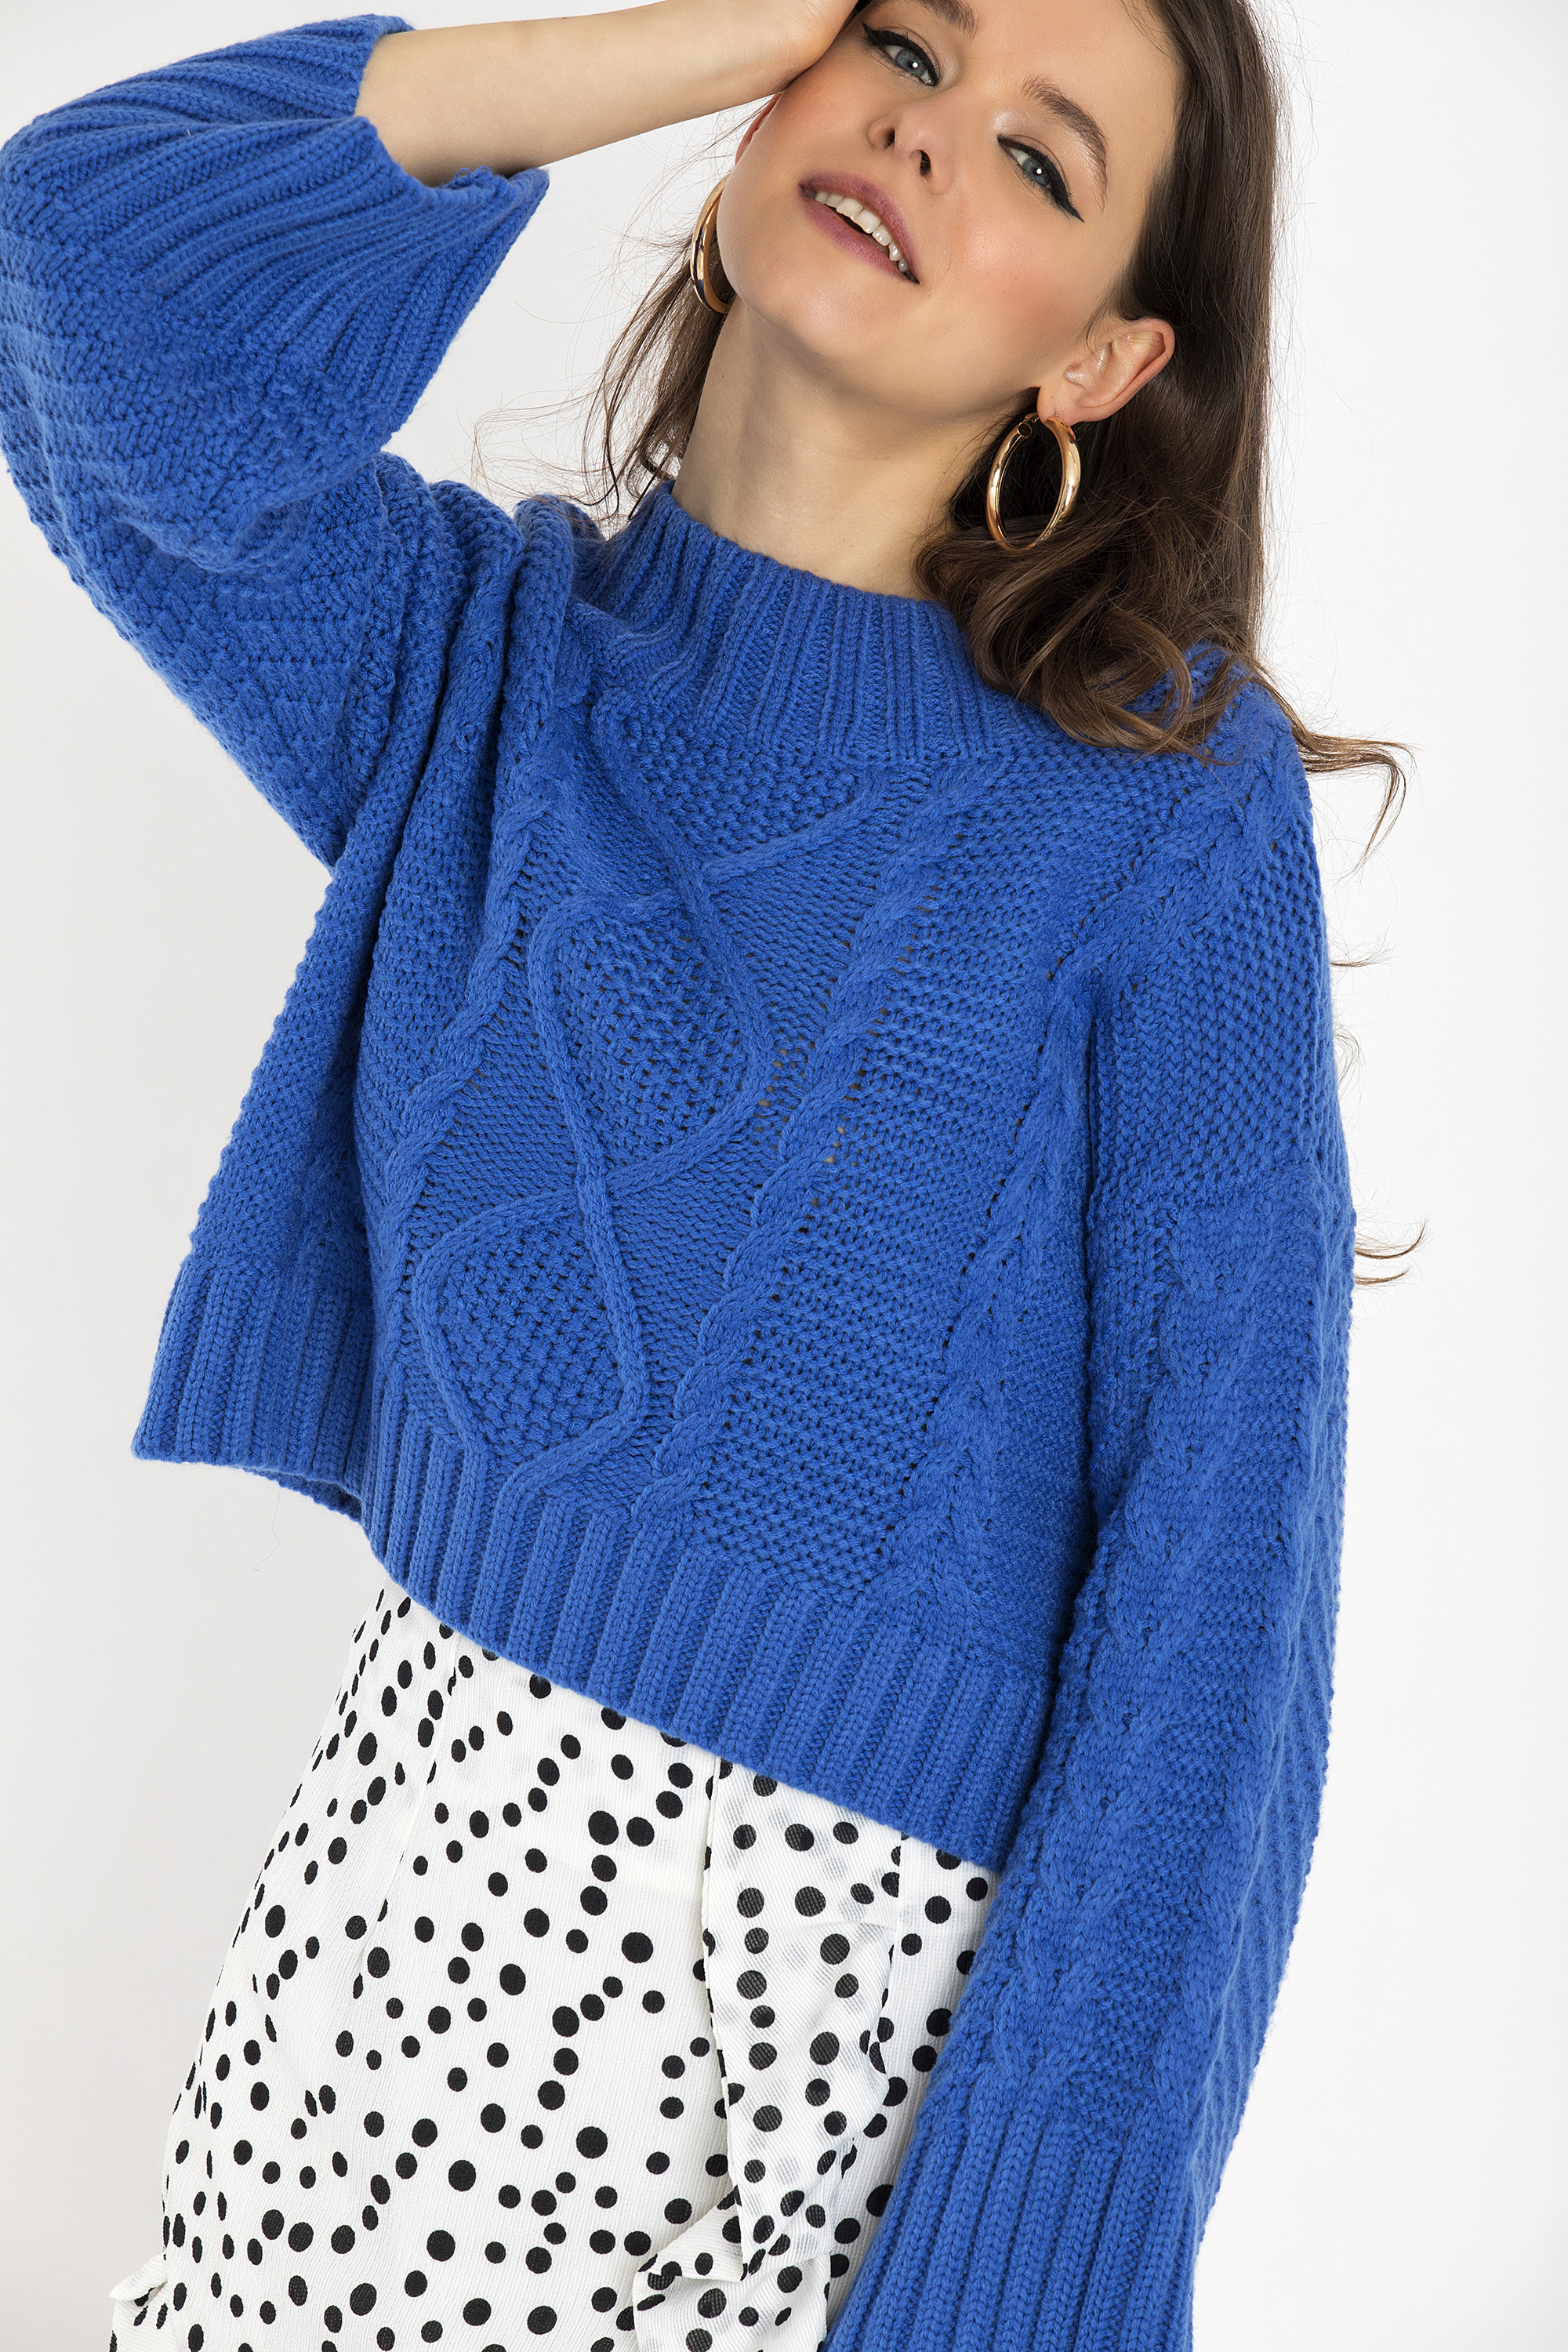 CHUNKY CROPPED ΠΟΥΛΟΒΕΡ - Μπλε clothes   tops   πουλόβερ